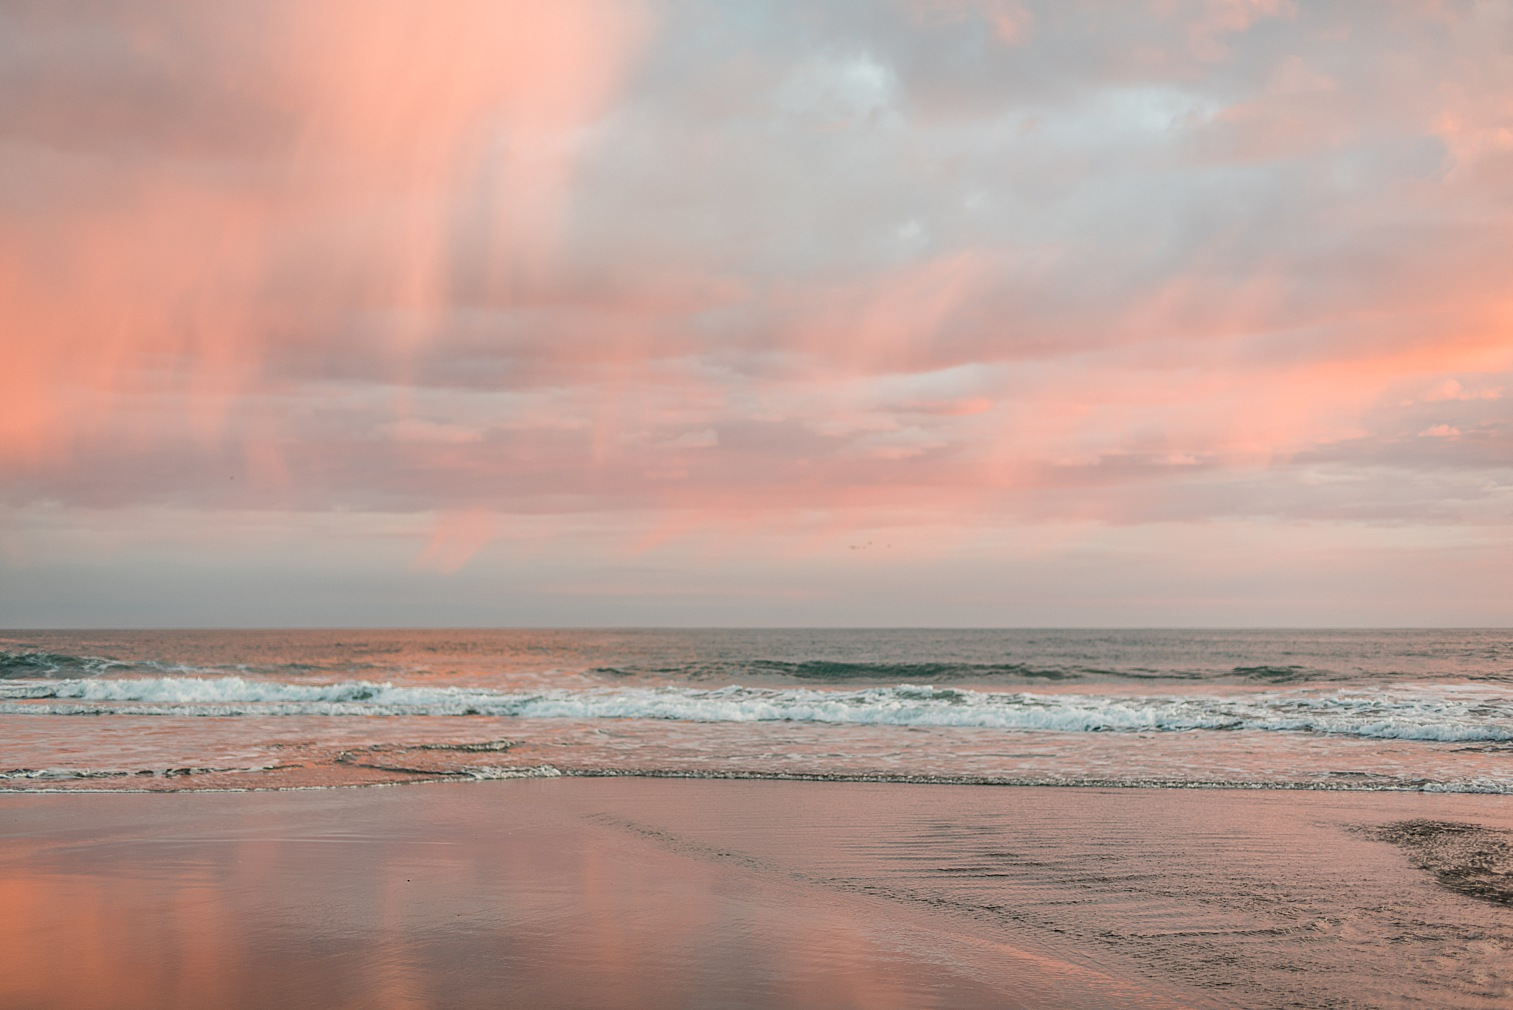 Oregon Coast Elopement Locations & Inspiration - Sunset at Harris Beach State Park. Image by Forthright Photo